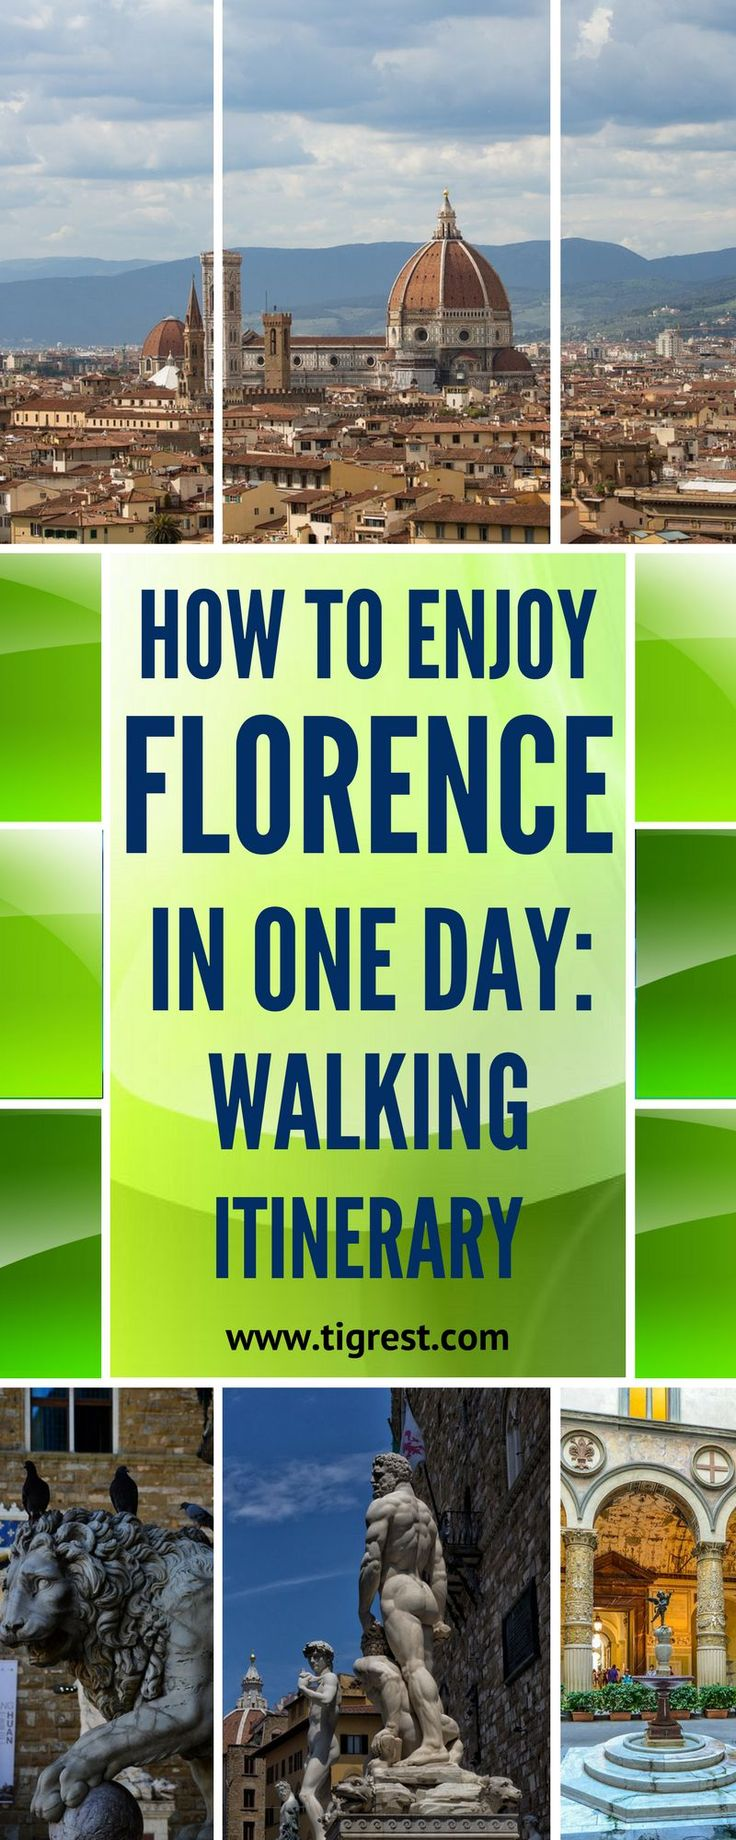 Florence Italy highlights - things to do and see in one day - Piazza Michelangelo, Ponte Vecchio, Piazza Signoria and many more!  Buy air tickets: | http://2track.info/Jl1s/